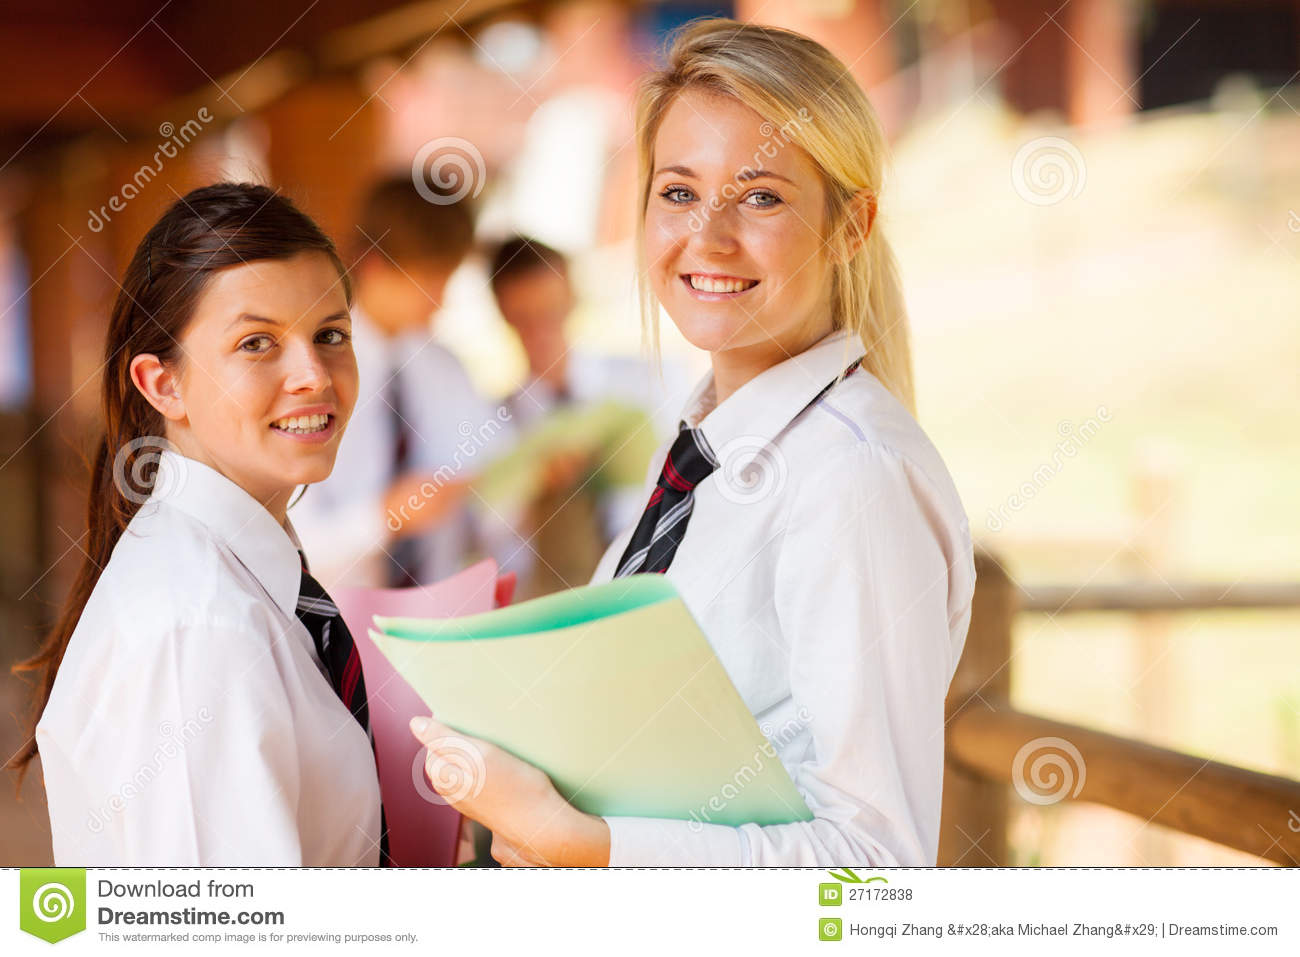 High School Girls Stock Photo Image Of Blond, Passage - 27172838-9224